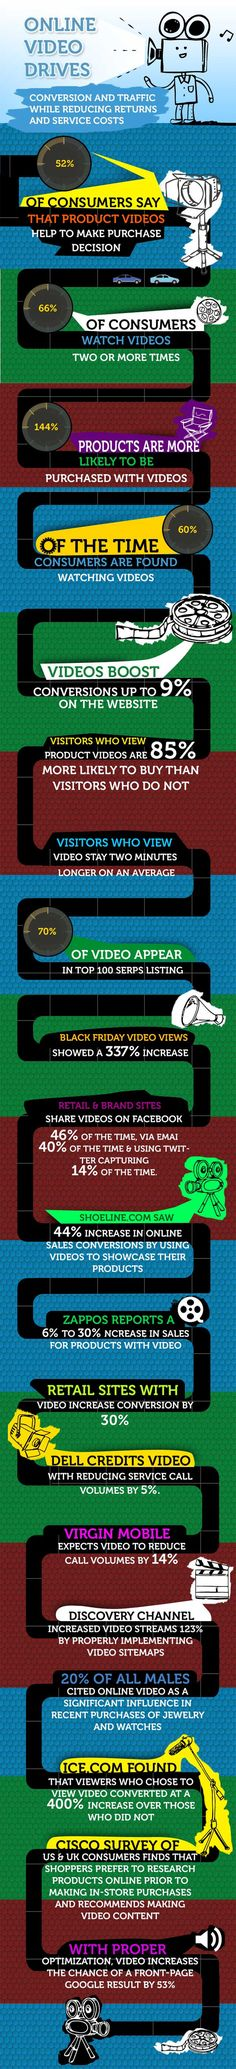 Online video drives: conversion and traffic while reducing returns and service costs